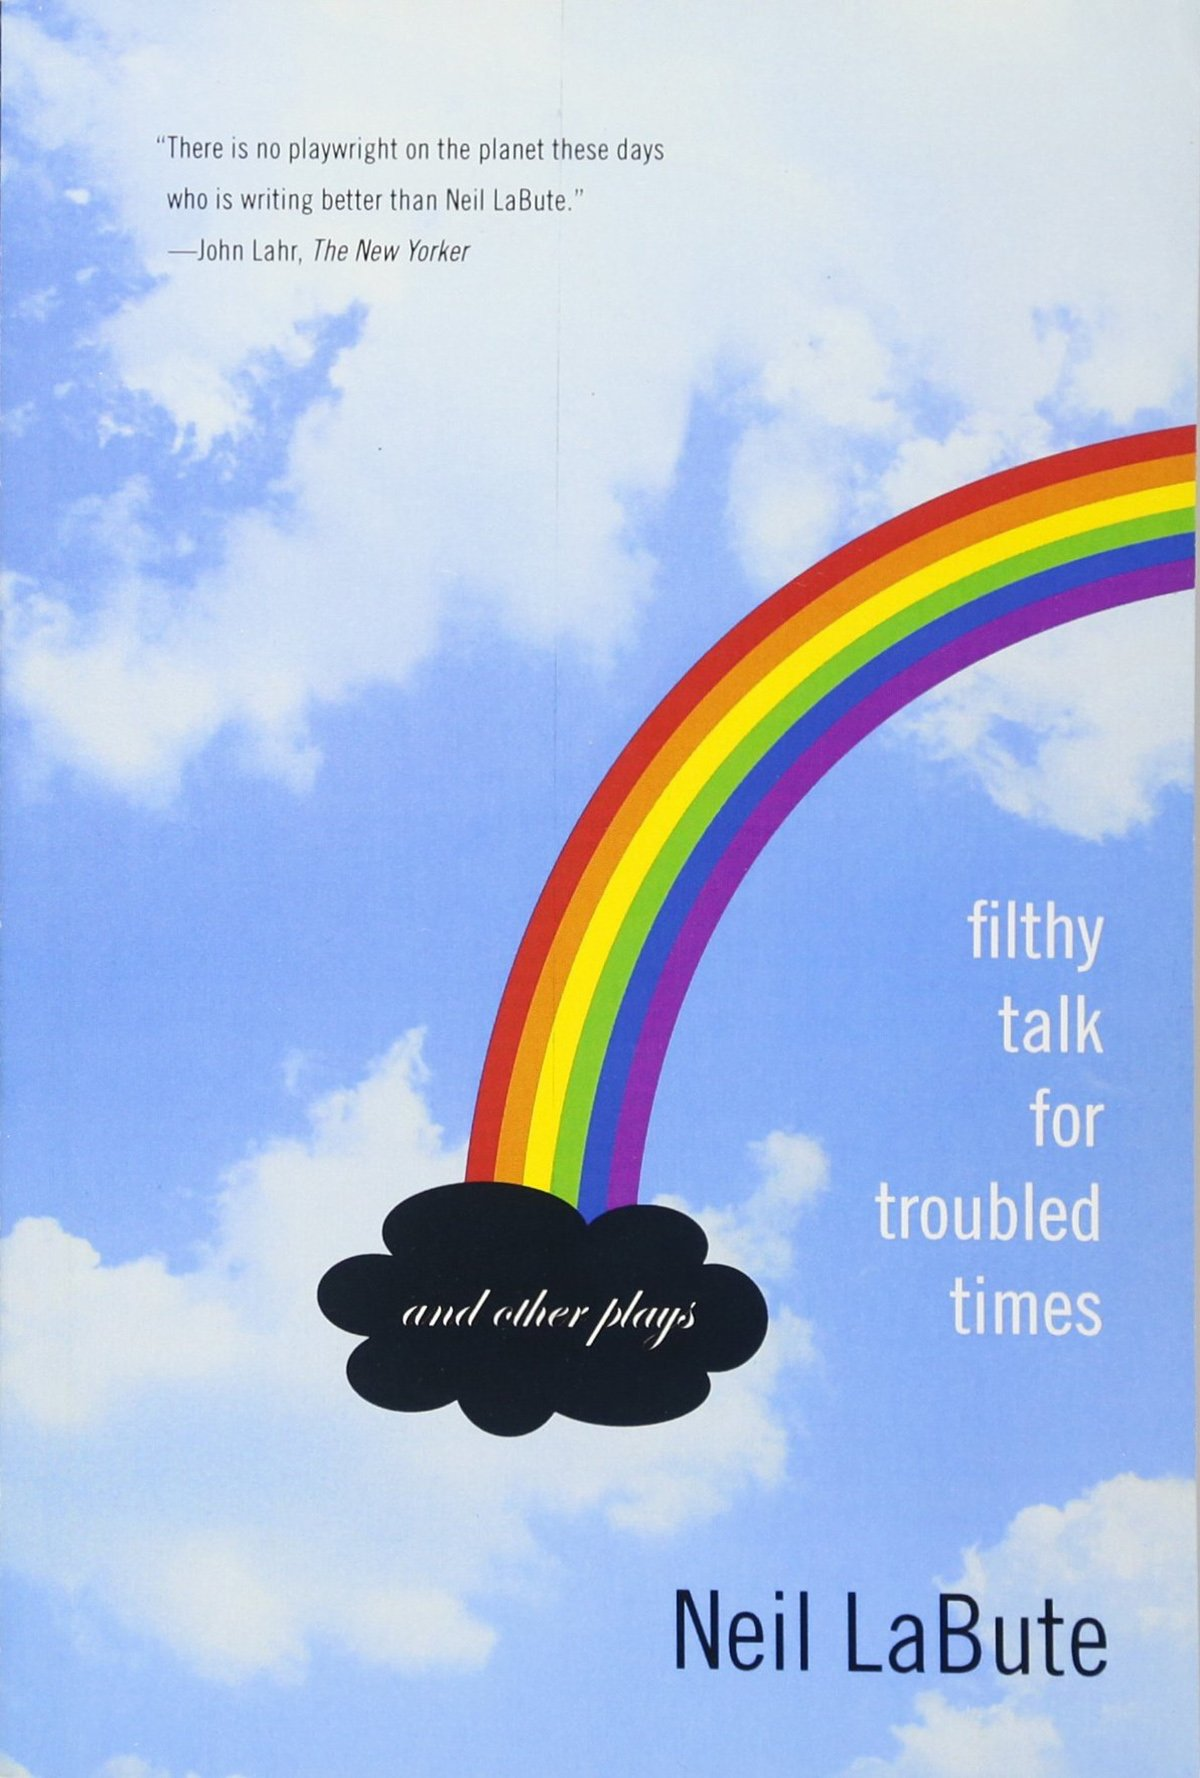 Desperate to Be Shocking: Neil LaBute's Filthy Talk for Troubled Times: And Other Plays